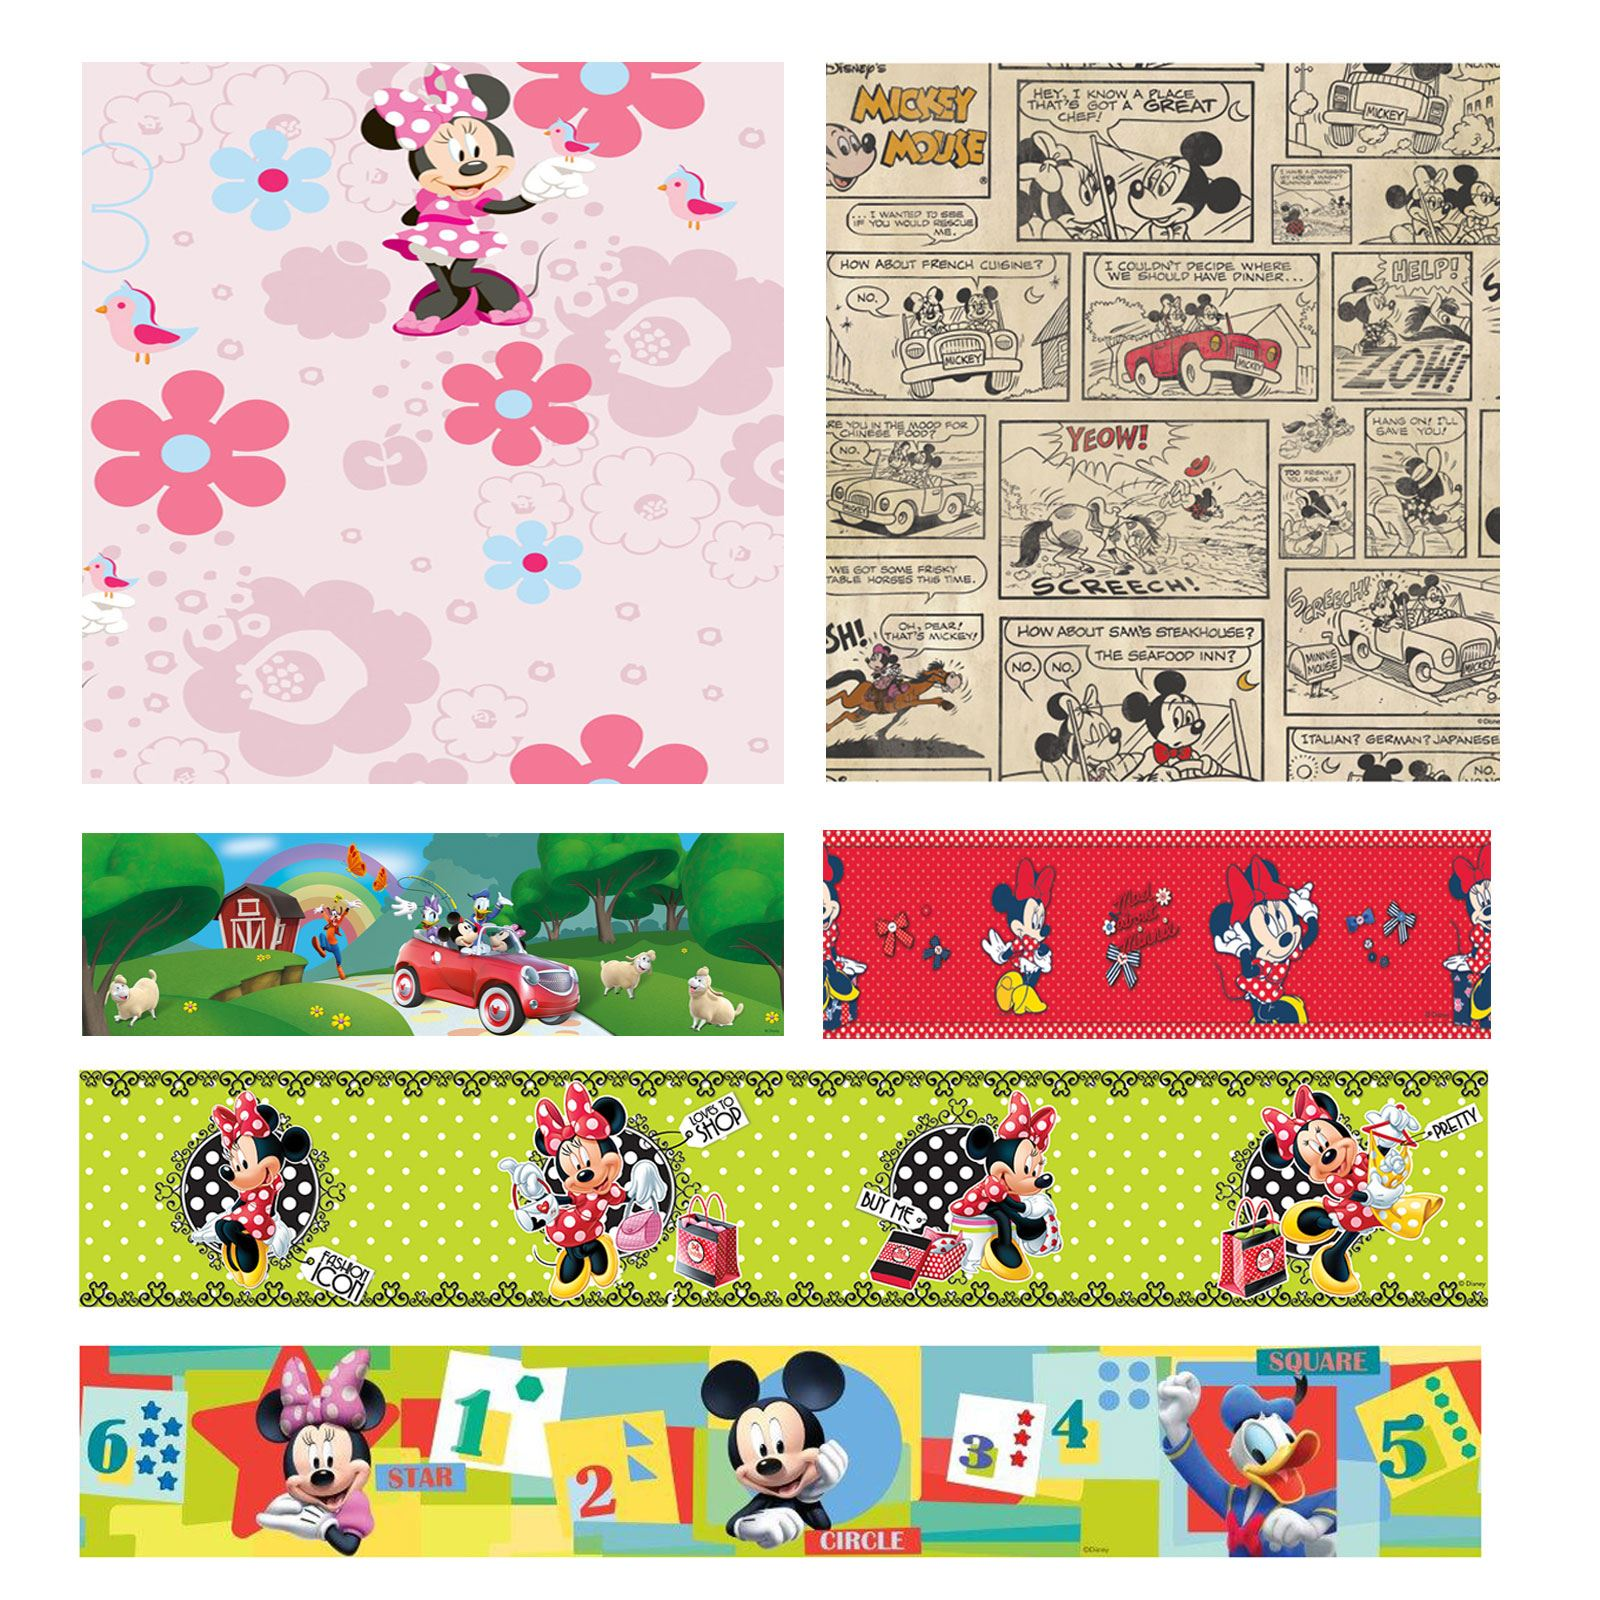 Disney topolino e minnie carte da parati e bordi cameretta for Bordi carta da parati